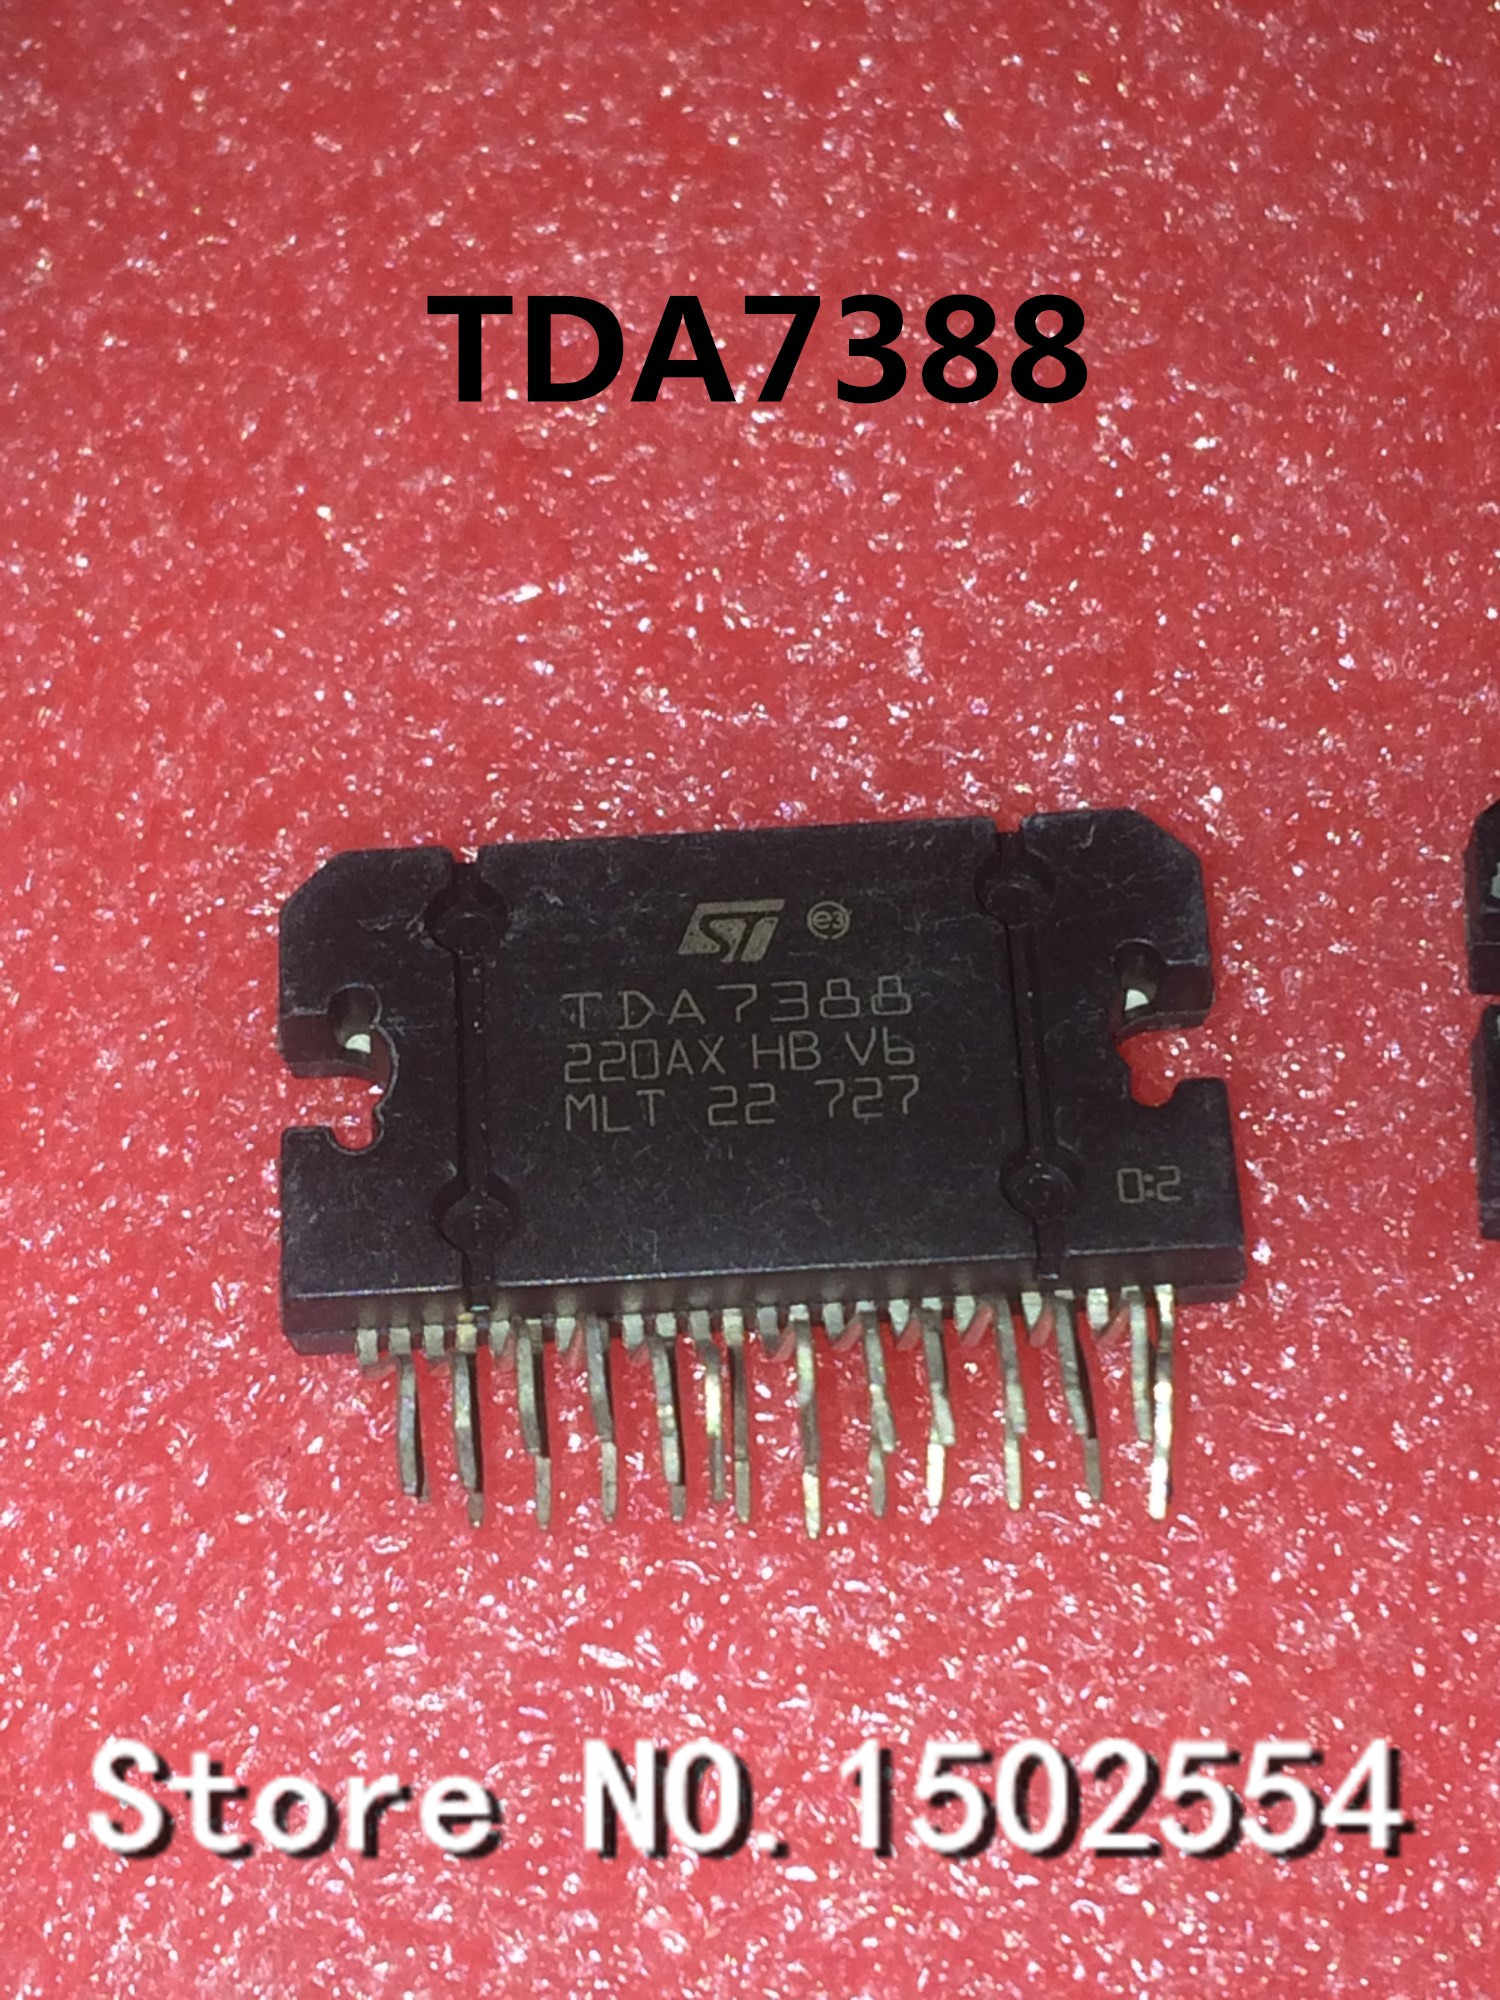 Detail Feedback Questions About 2pcs Lot Tda7388 Zip25 Tda7388a Zip 60 Watts Linear Amplifier With Irf840 25 Car Audio Chip Ic Four Channel Output